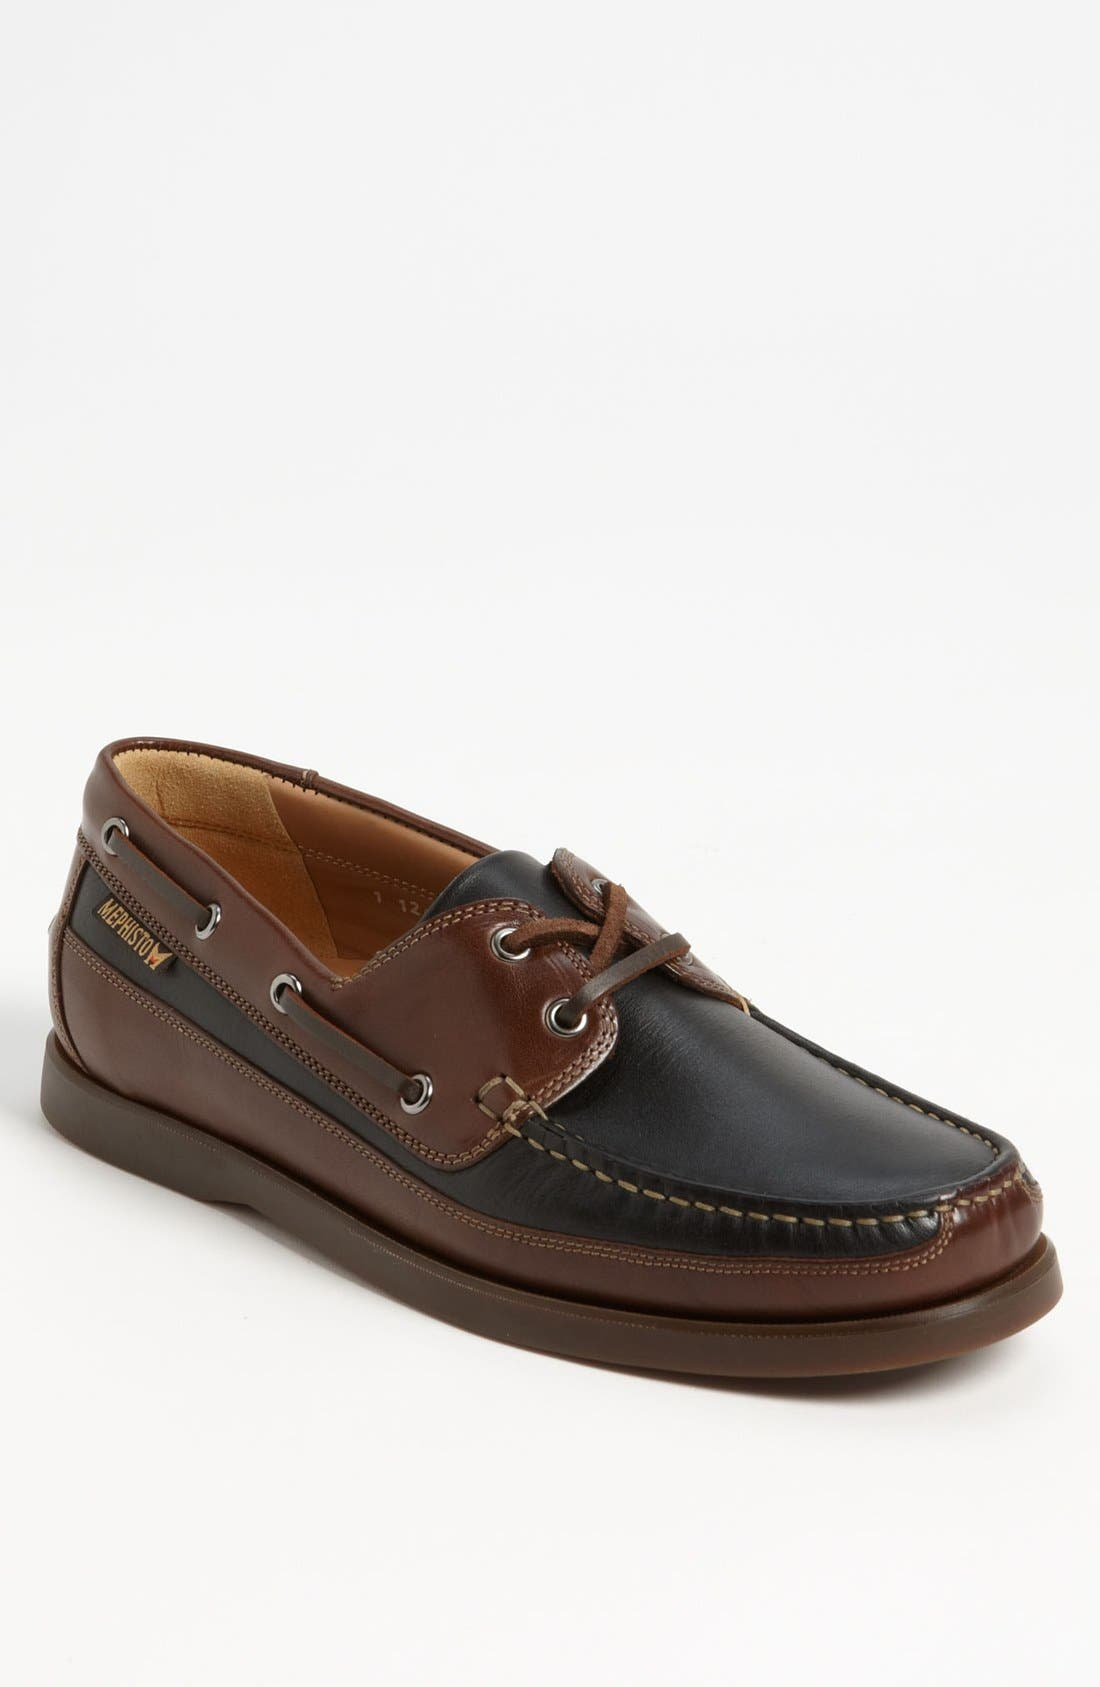 Alternate Image 1 Selected - Mephisto 'Boating' Water Resistant Leather Boat Shoe (Men)